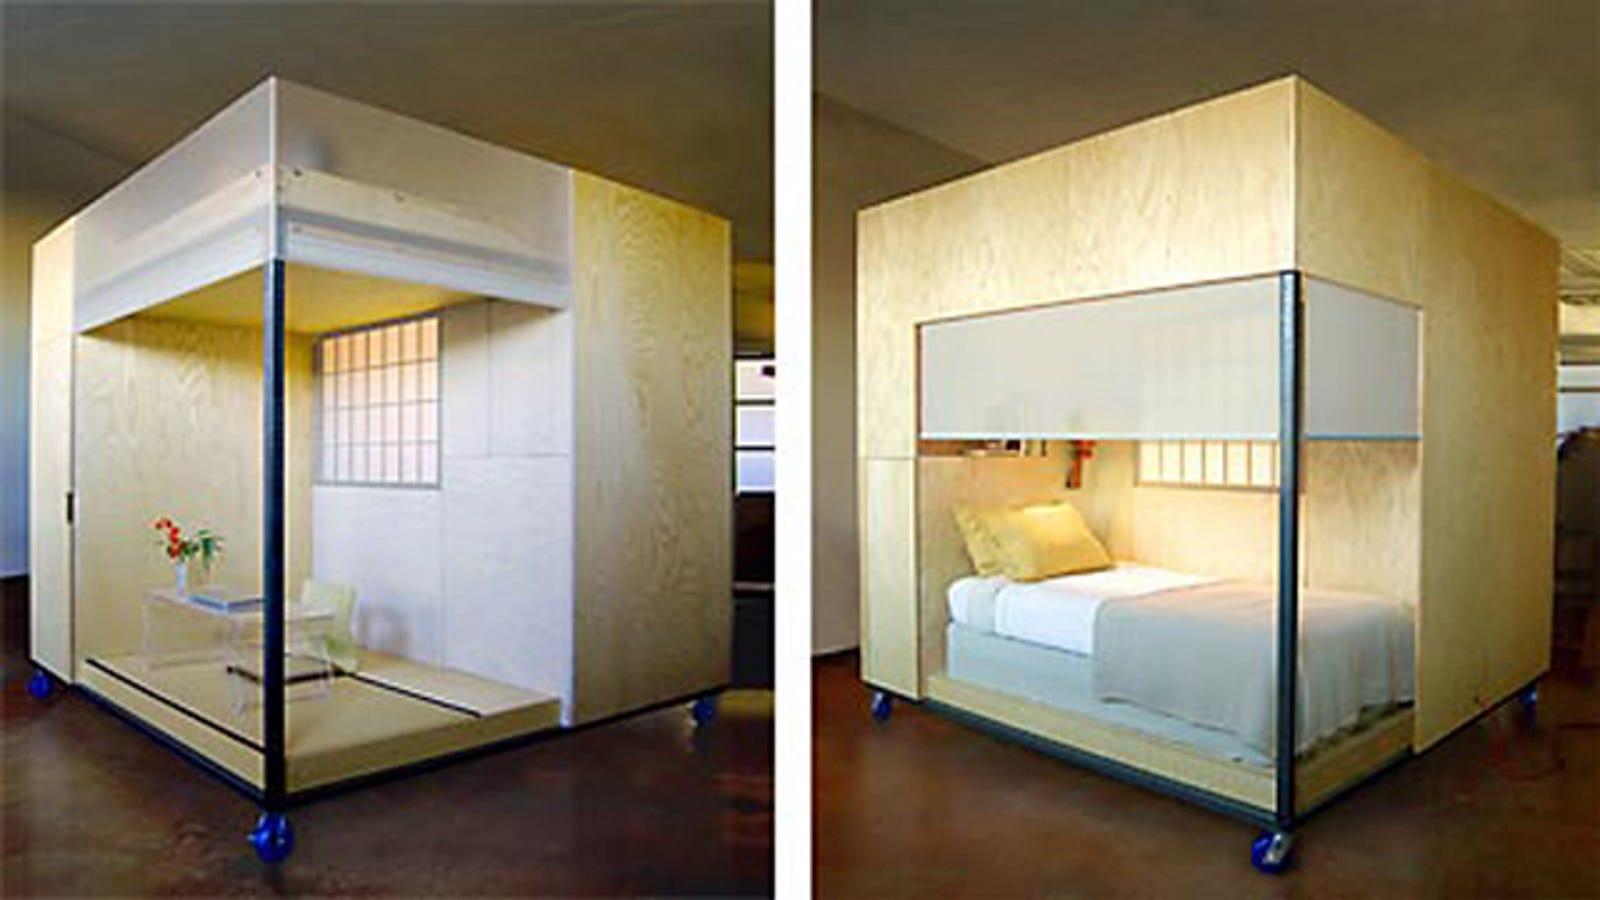 Reorganizing Room: Reorganize Your Giant, Underground Bunker Every Day With